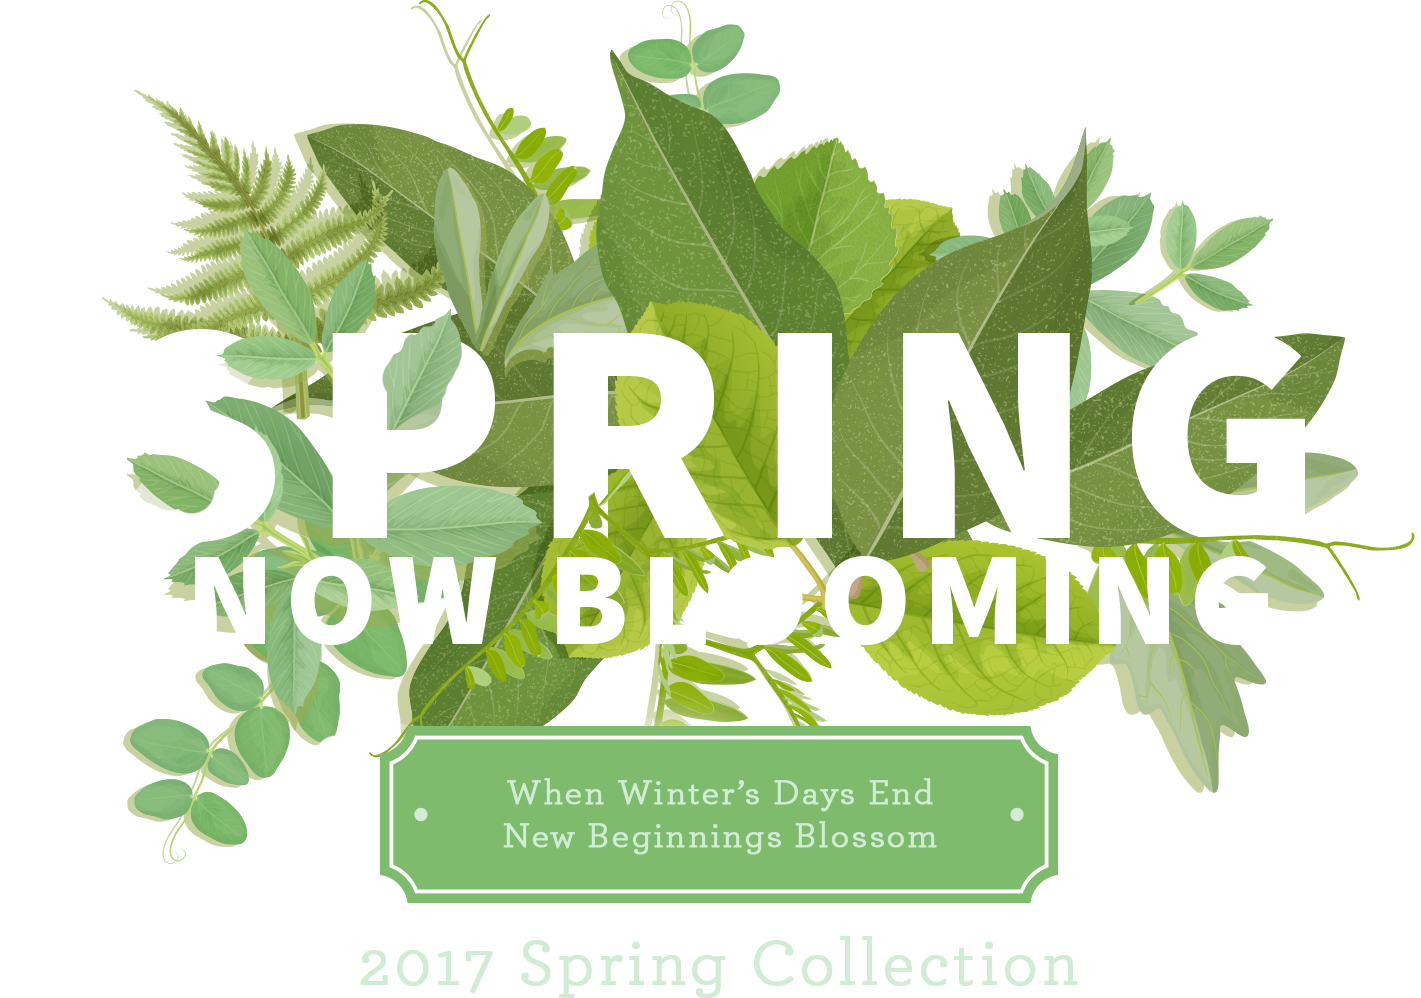 Spring Now Blooming. When winter's days end, new beginnings blossom. 2017 Spring Collection